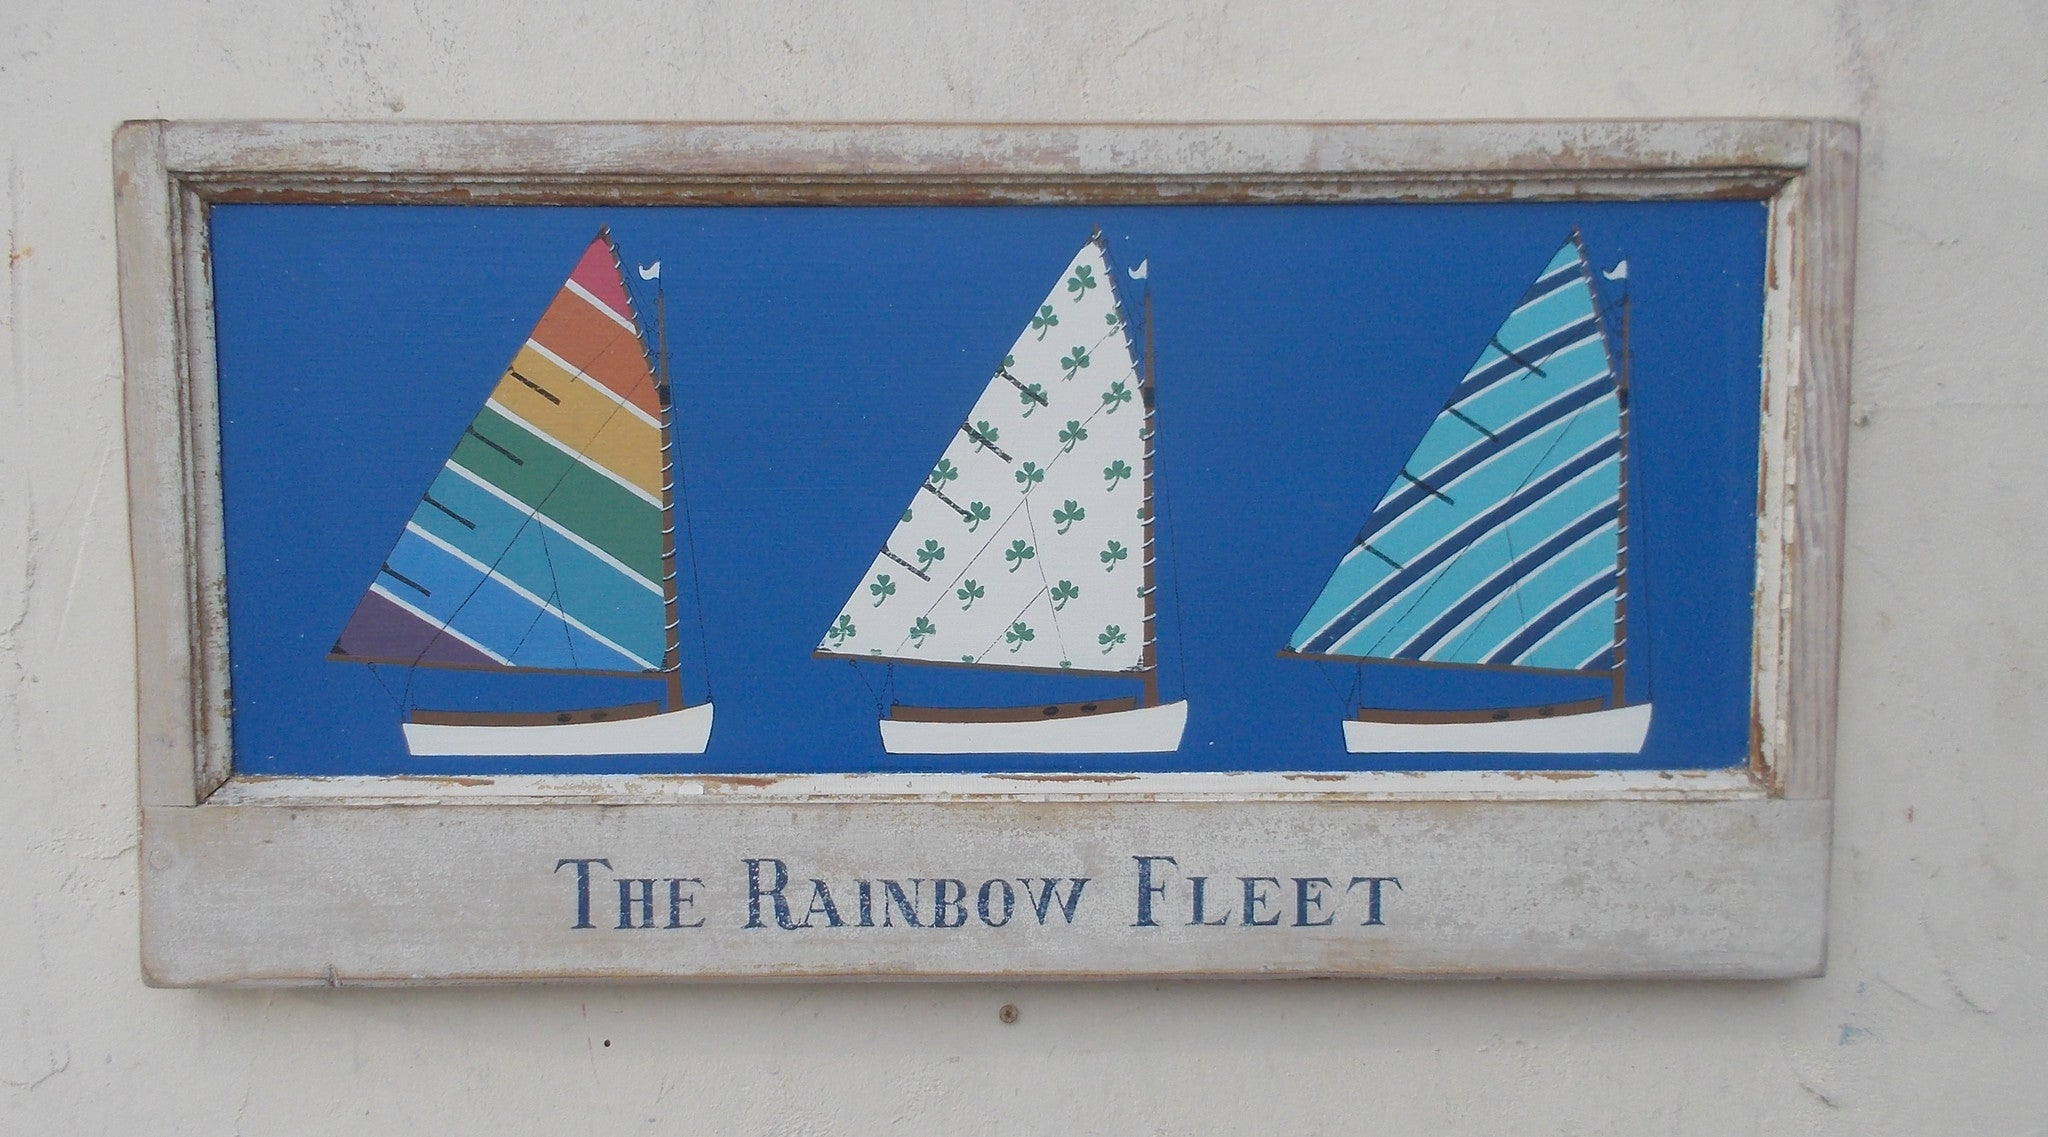 Rainbow Fleet in old frame